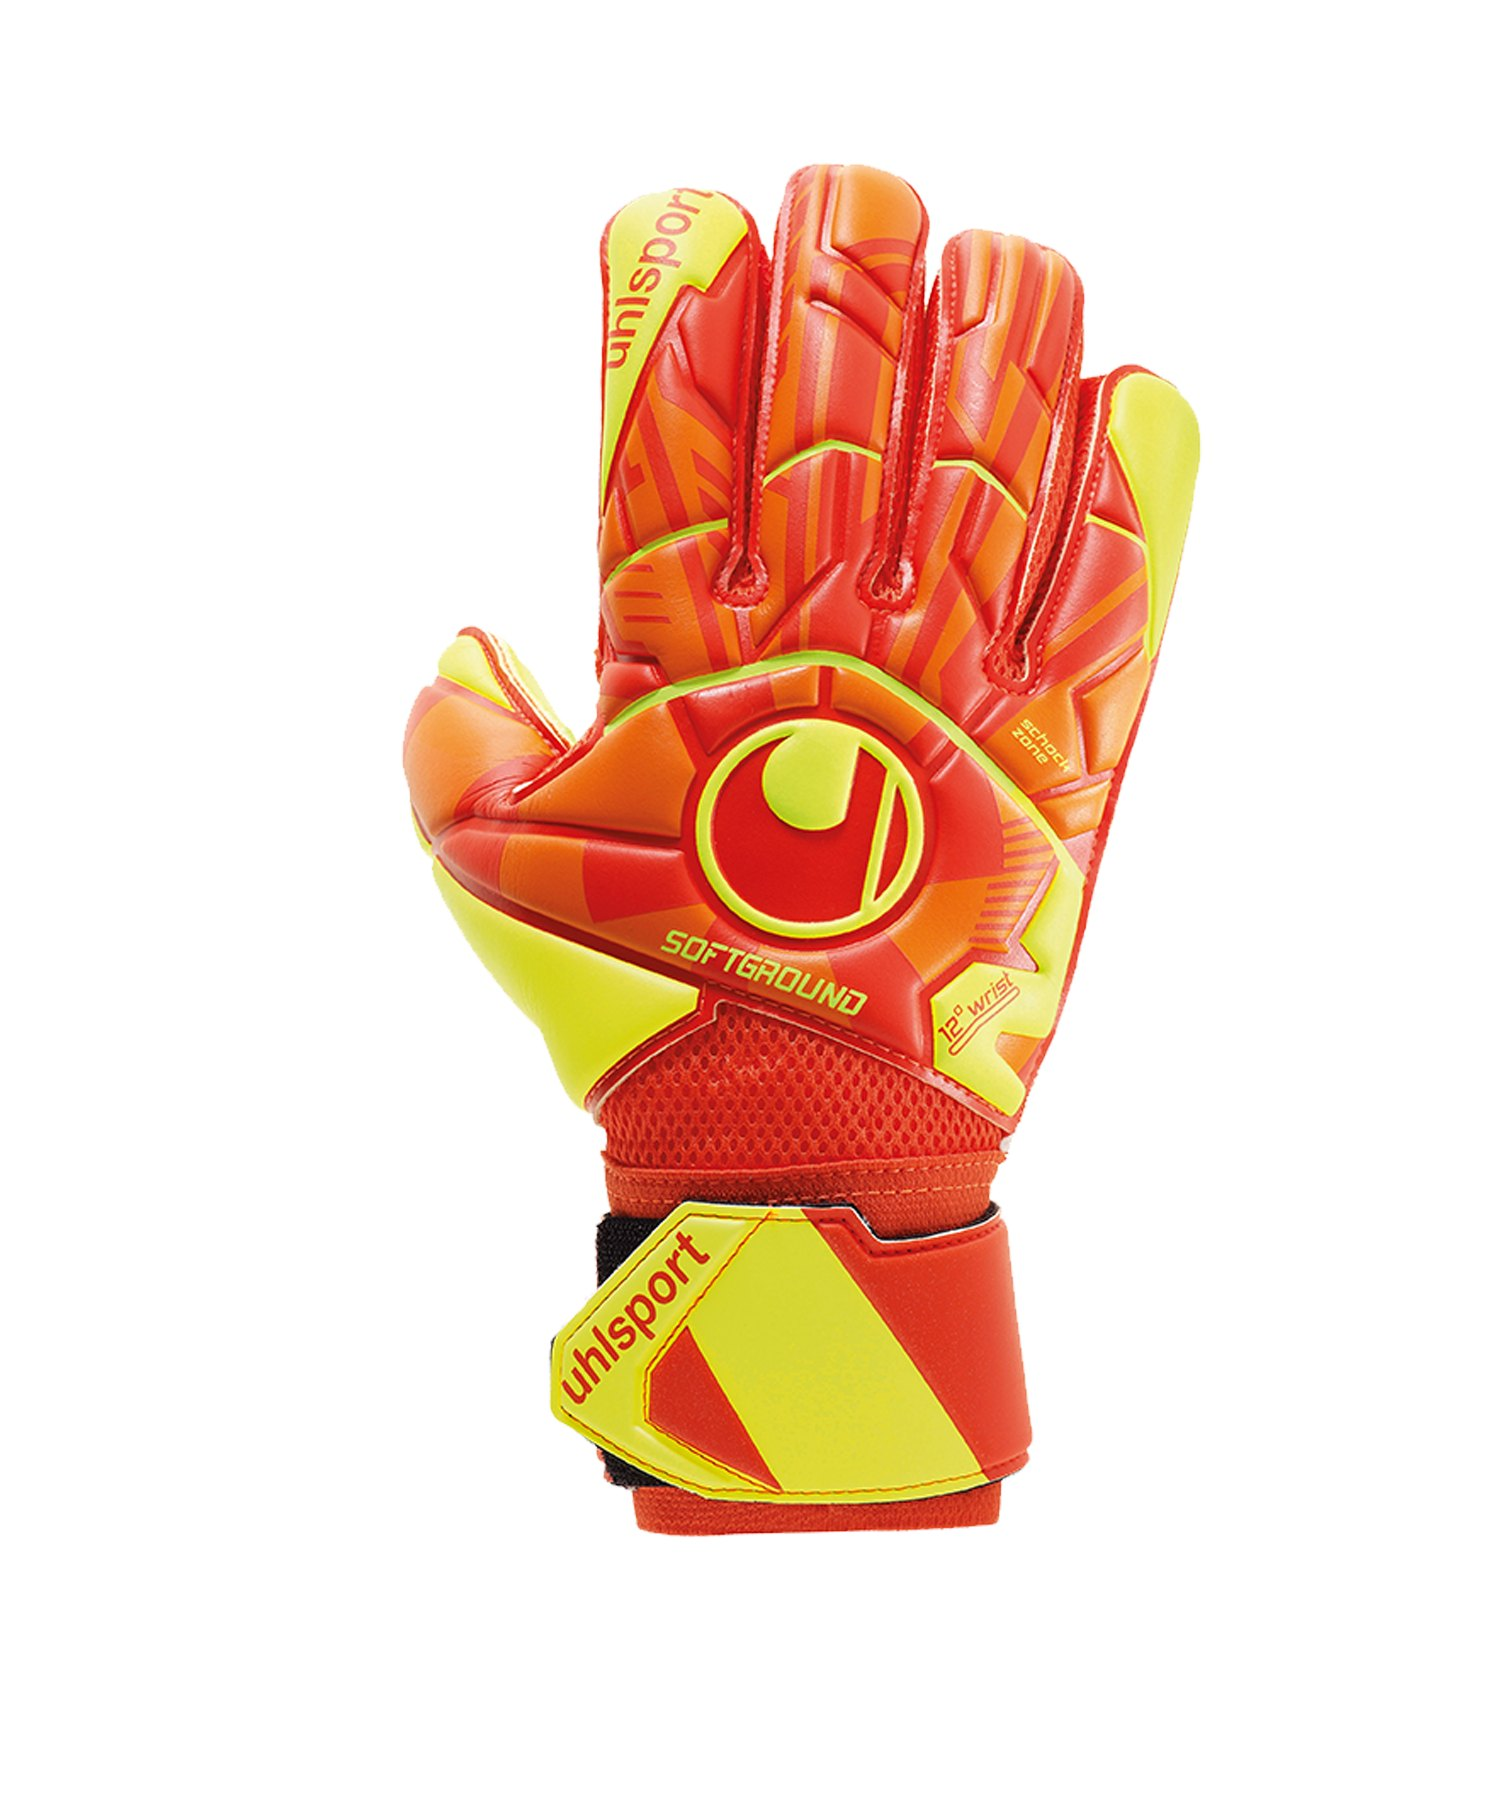 Uhlsport Dyn.Impulse SF TW-Handschuh Kids F01 - orange